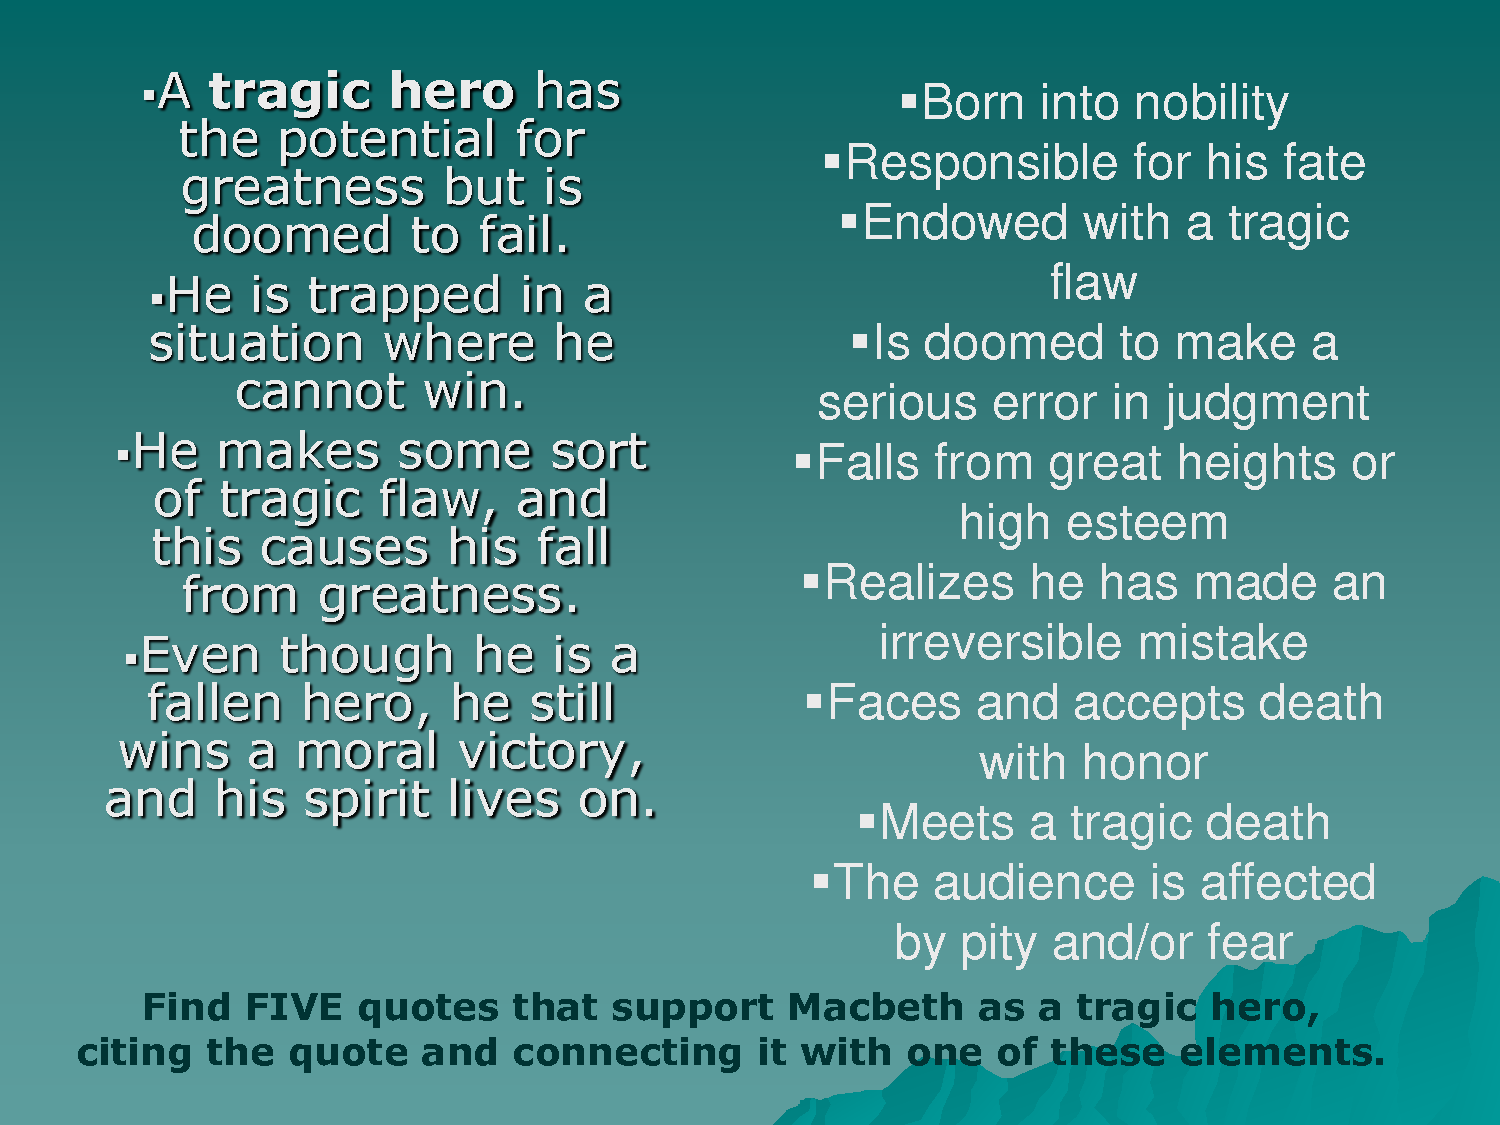 tragic flaws of macbeth essay Free tragic flaws papers, essays, and macbeth as a shakespearean tragic hero - macbeth as a shakespearean tragic hero in this essay i macbeth's tragic flaw in.